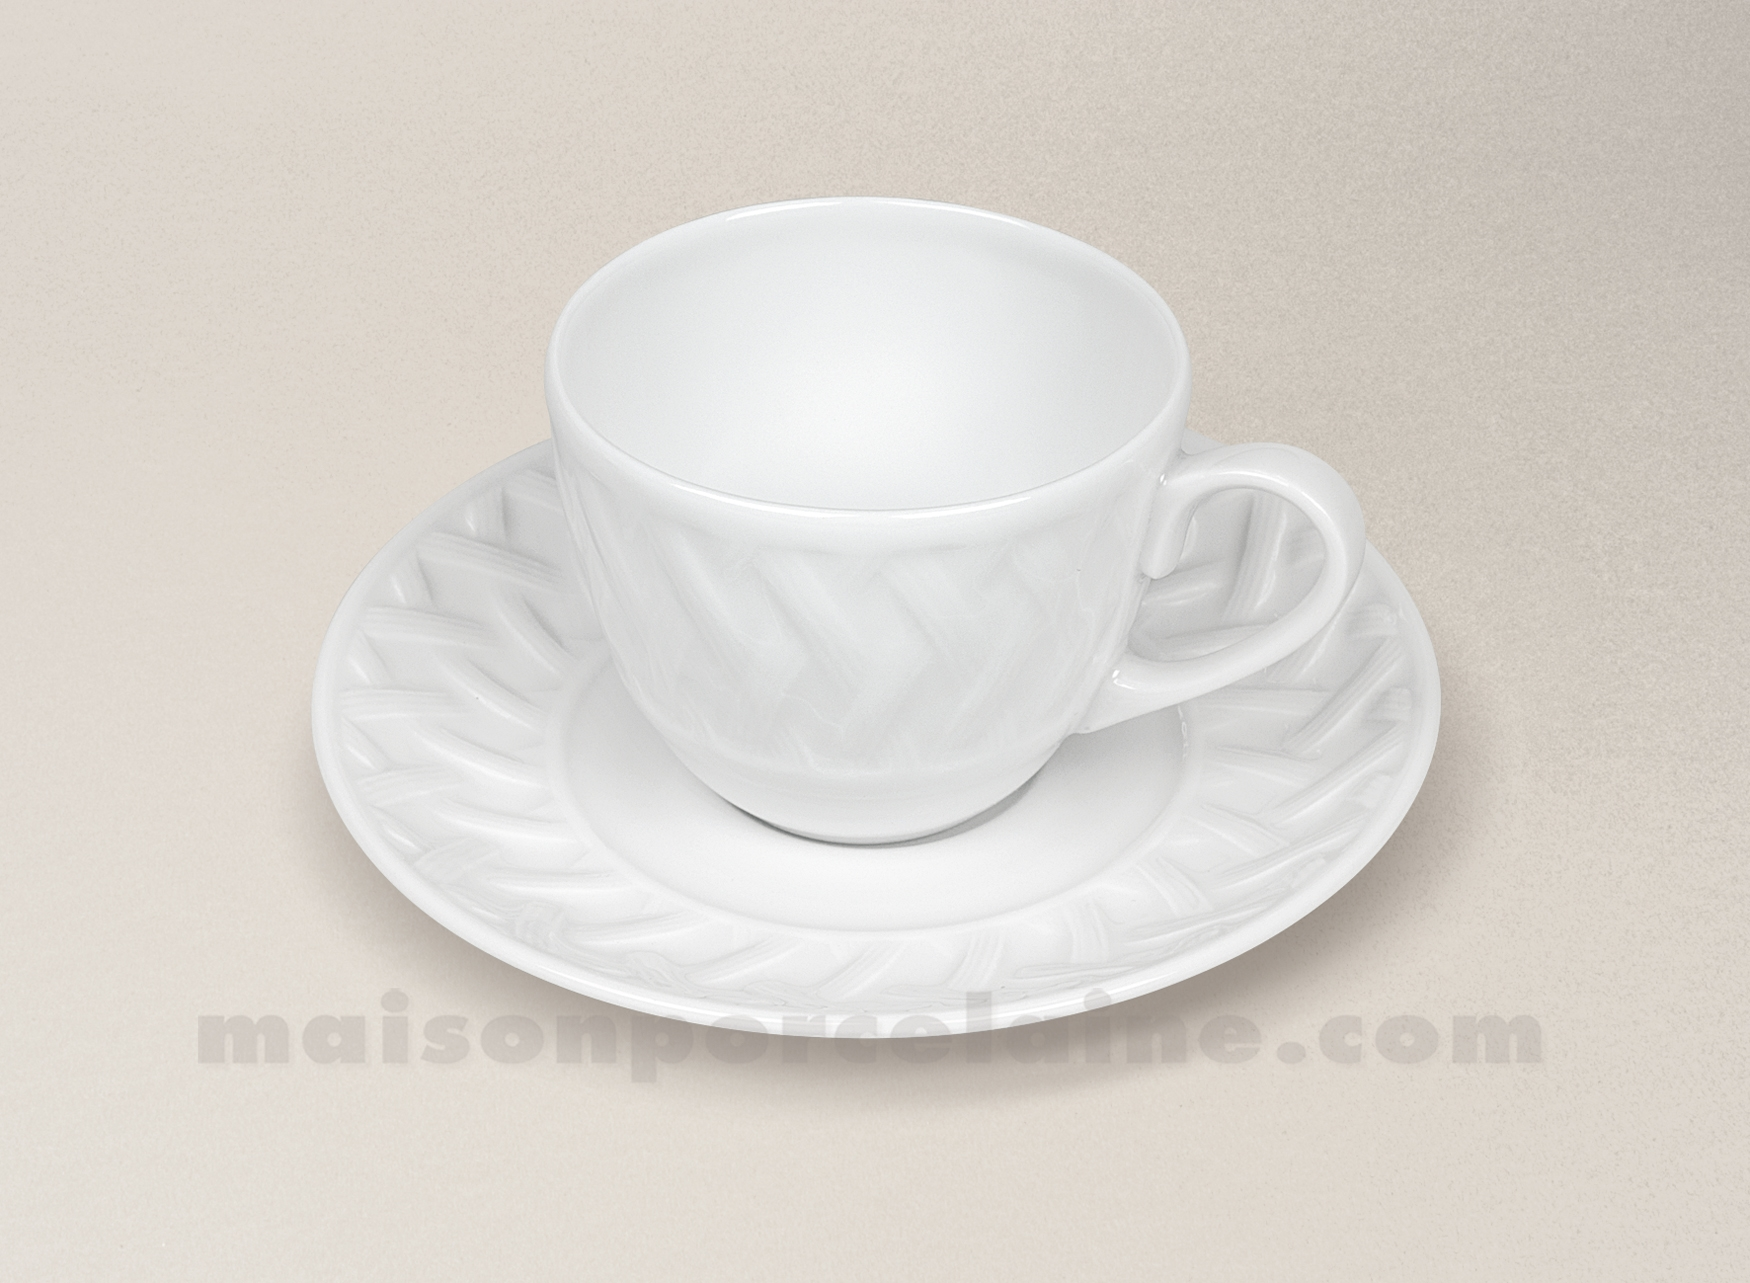 Tasse cafe soucoupe porcelaine blanche louisiane 10cl for Maison de la porcelaine